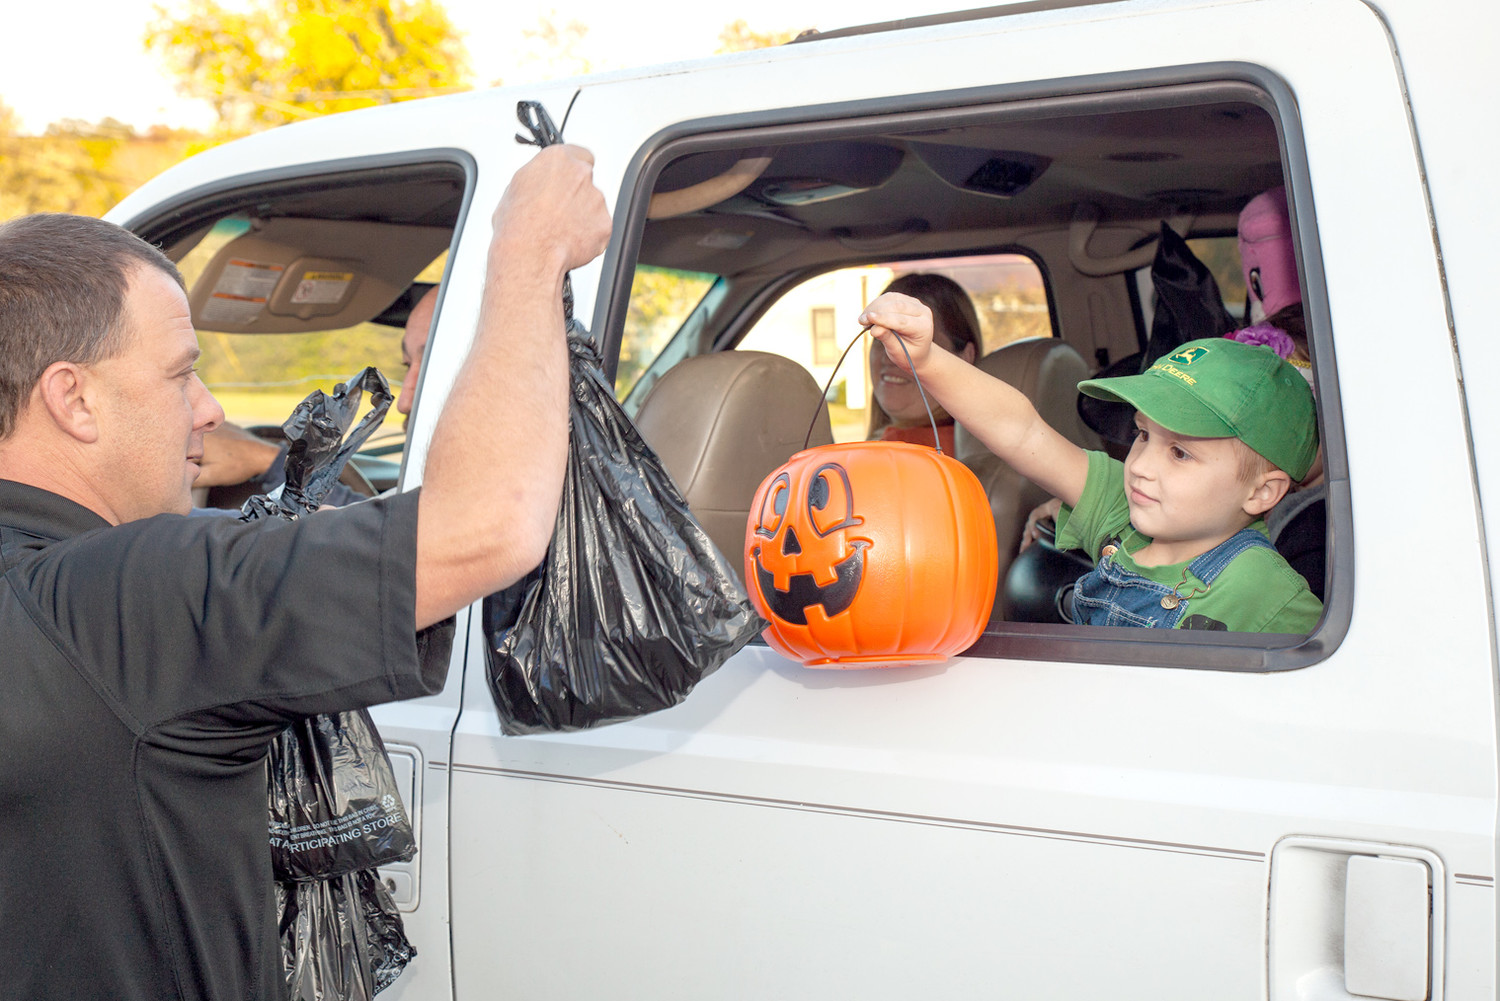 CONSTABLE WAYNE HENRY, right, continues his seven-year tradition of passing out bags of candy to trick-or-treaters by the carload at Oak Grove Elementary School on Halloween.  The trick-or-treater in this car brought a candy catcher, but it seemed to be too small to grab the bag of candy from the constable.